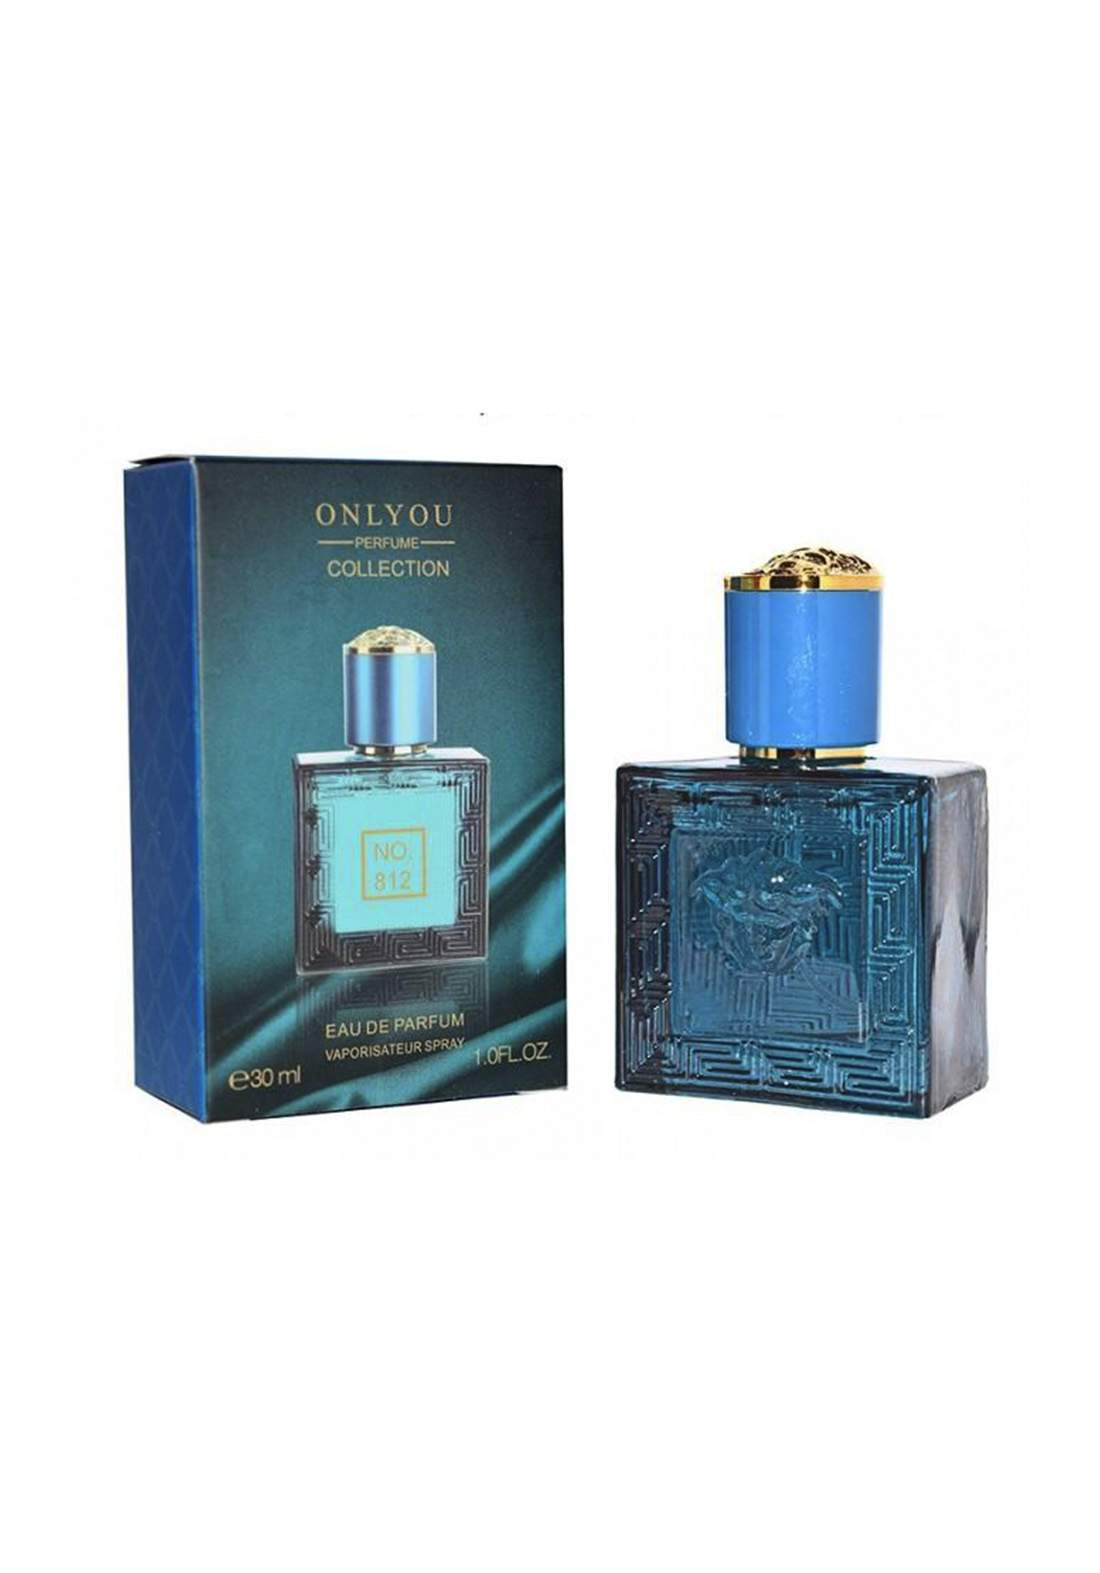 Onlyou Perfume Collection No.812 Edp 30ml For Men عطر رجالي